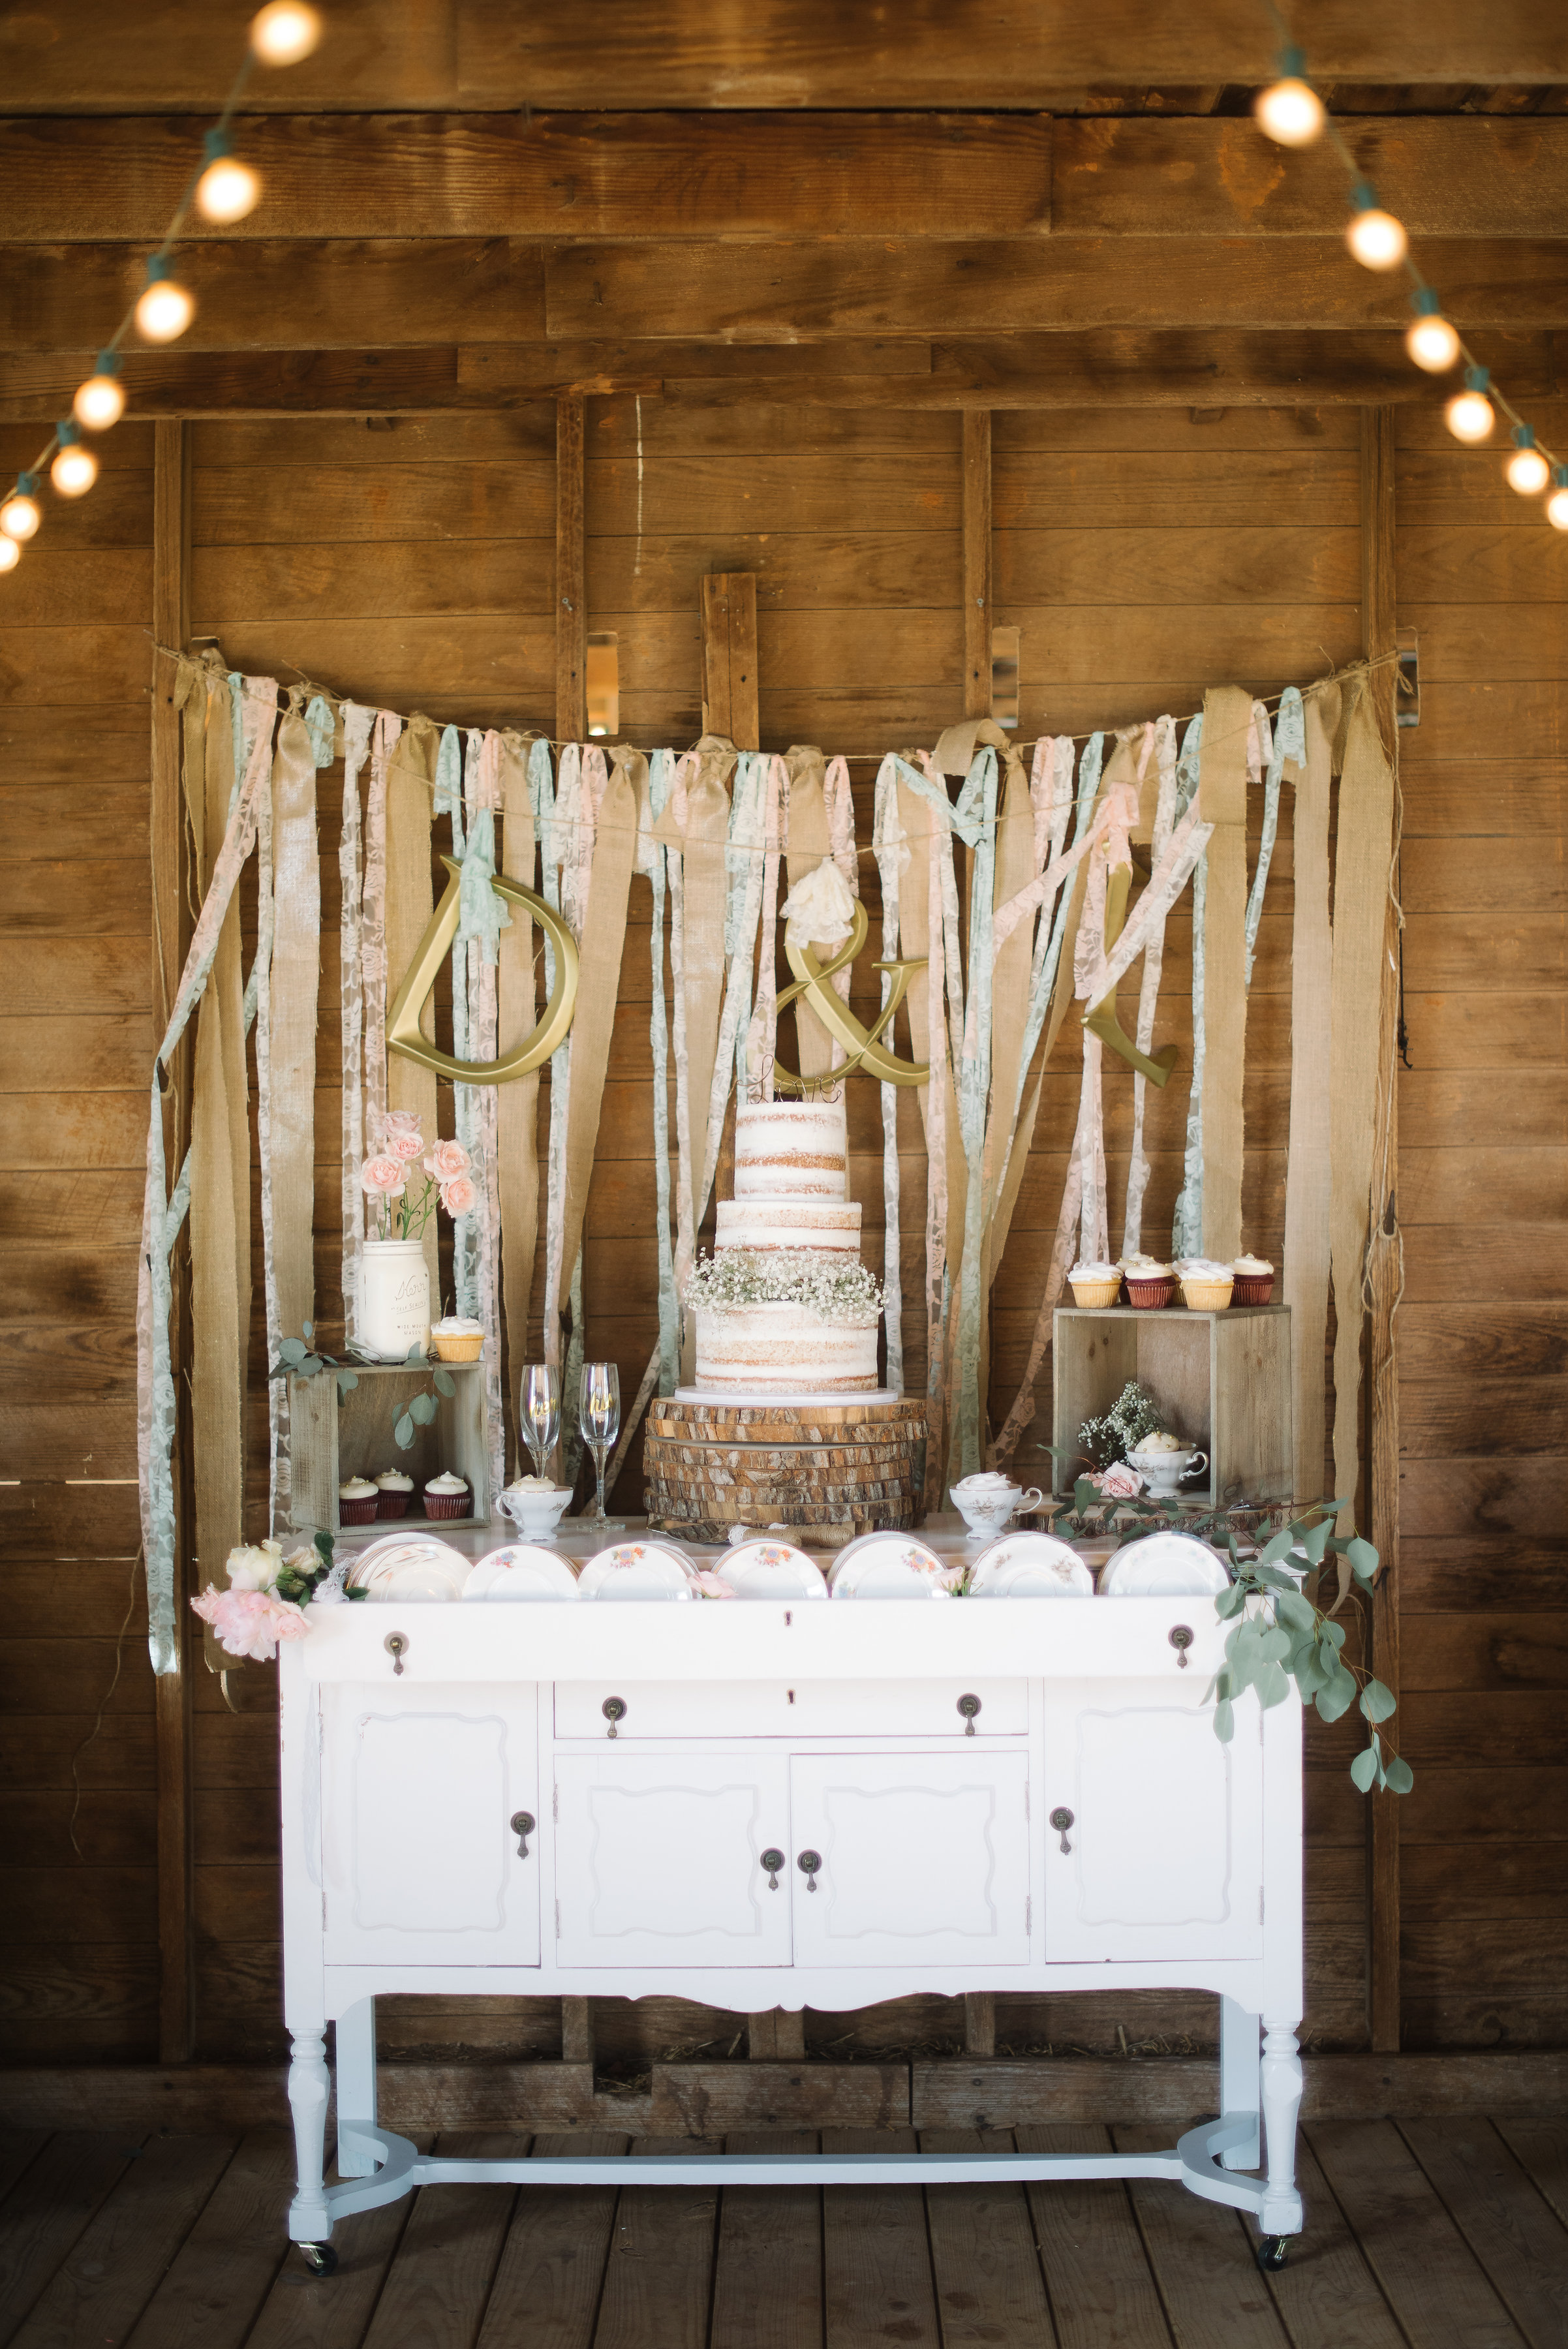 and the rustic/chic details just keep getting better and better!